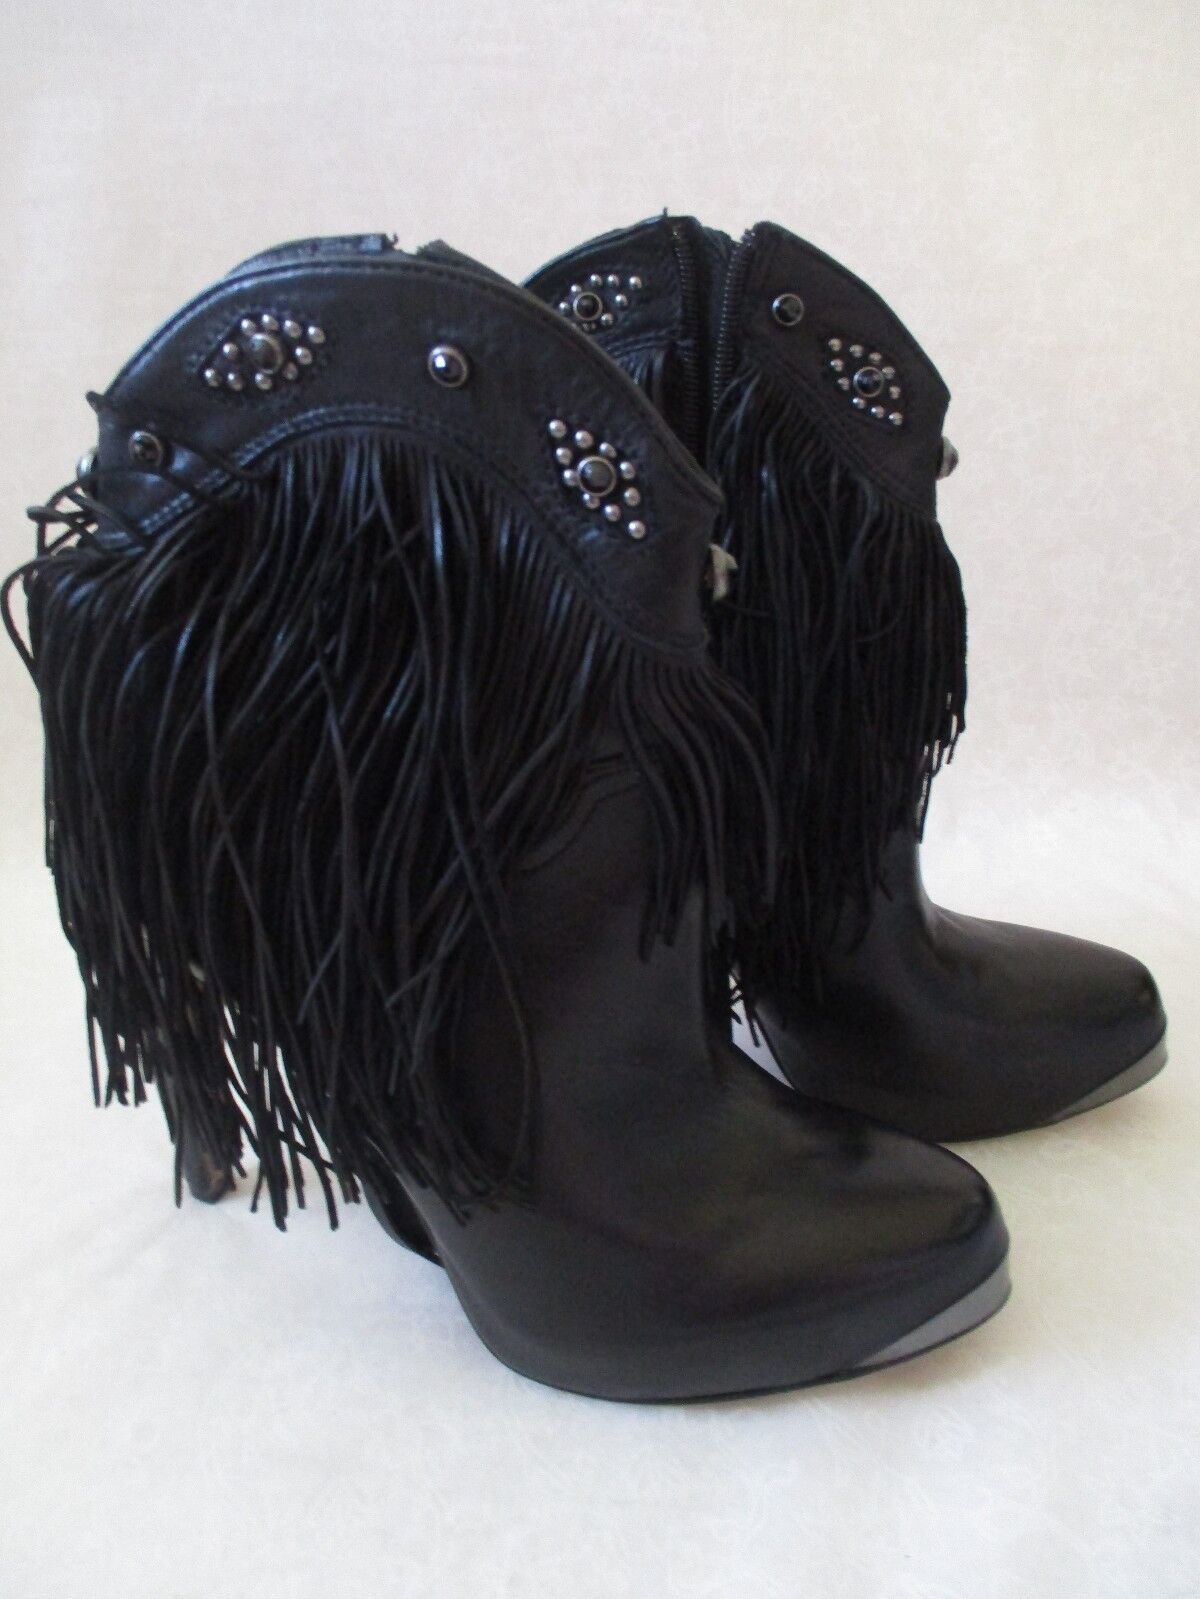 250 SAM EDELMAN BLACK GENUINE LEATHER ANKLE BEADED BOOTS SIZE 7 M - NEW